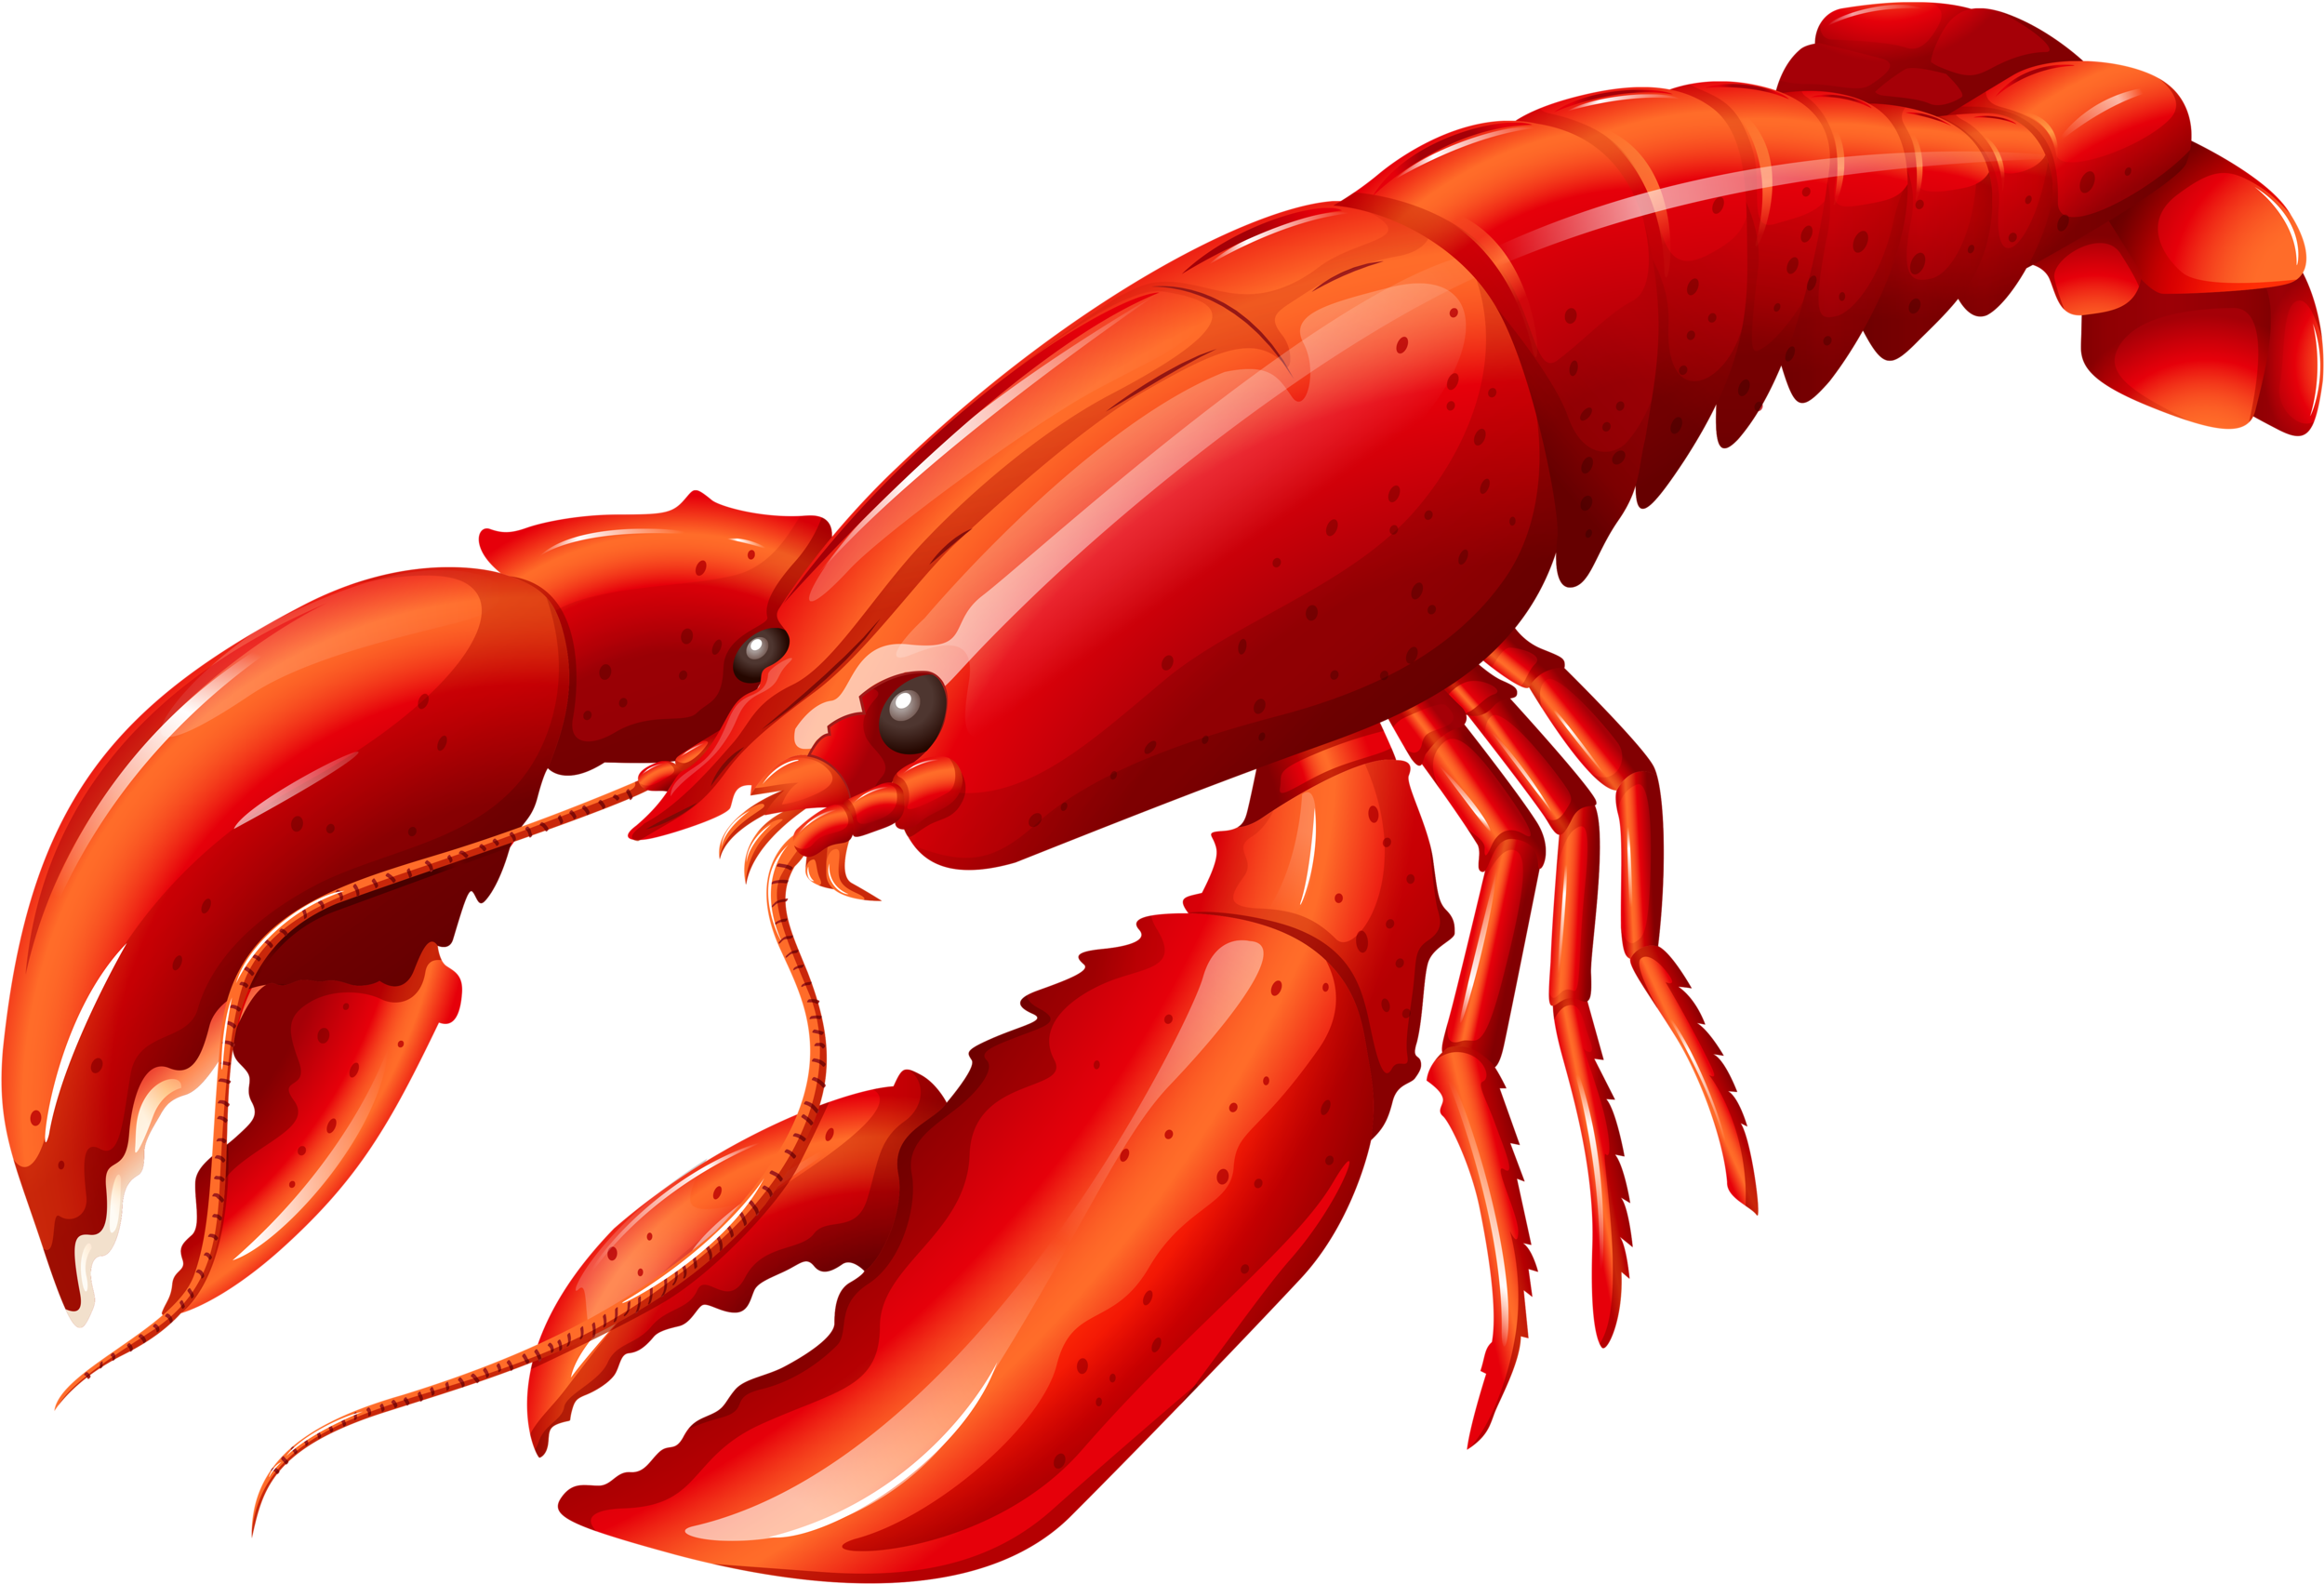 Hd chef hat different. Crawfish clipart transparent background